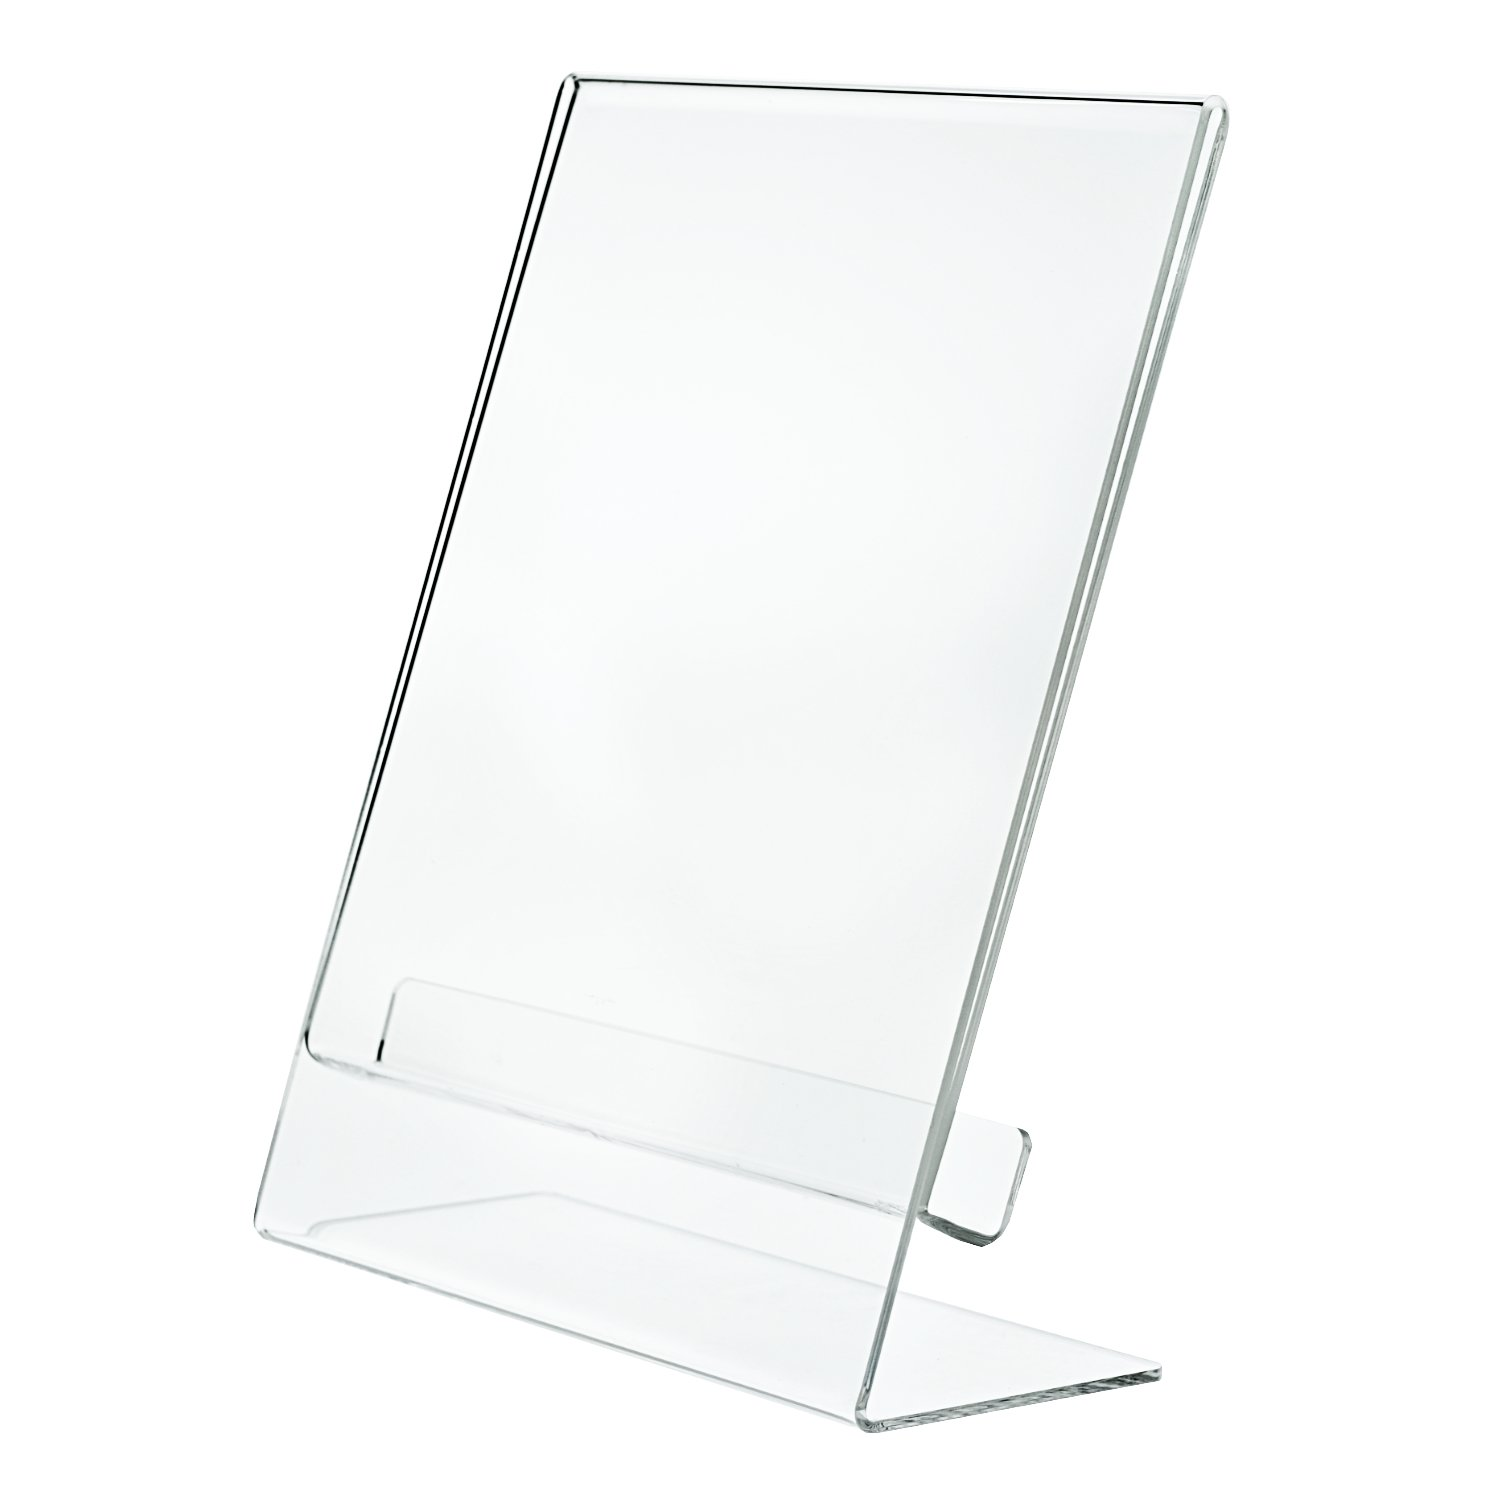 BLOWOUT SALE - Set of 6 - SUPER THICK Clear Portrait Frames - Slant Back Acrylic, 8.5 x 11 Inches, 3mm Thick, Clear Sign Holder, Display Stand, Brochure Holder, and Document Holder